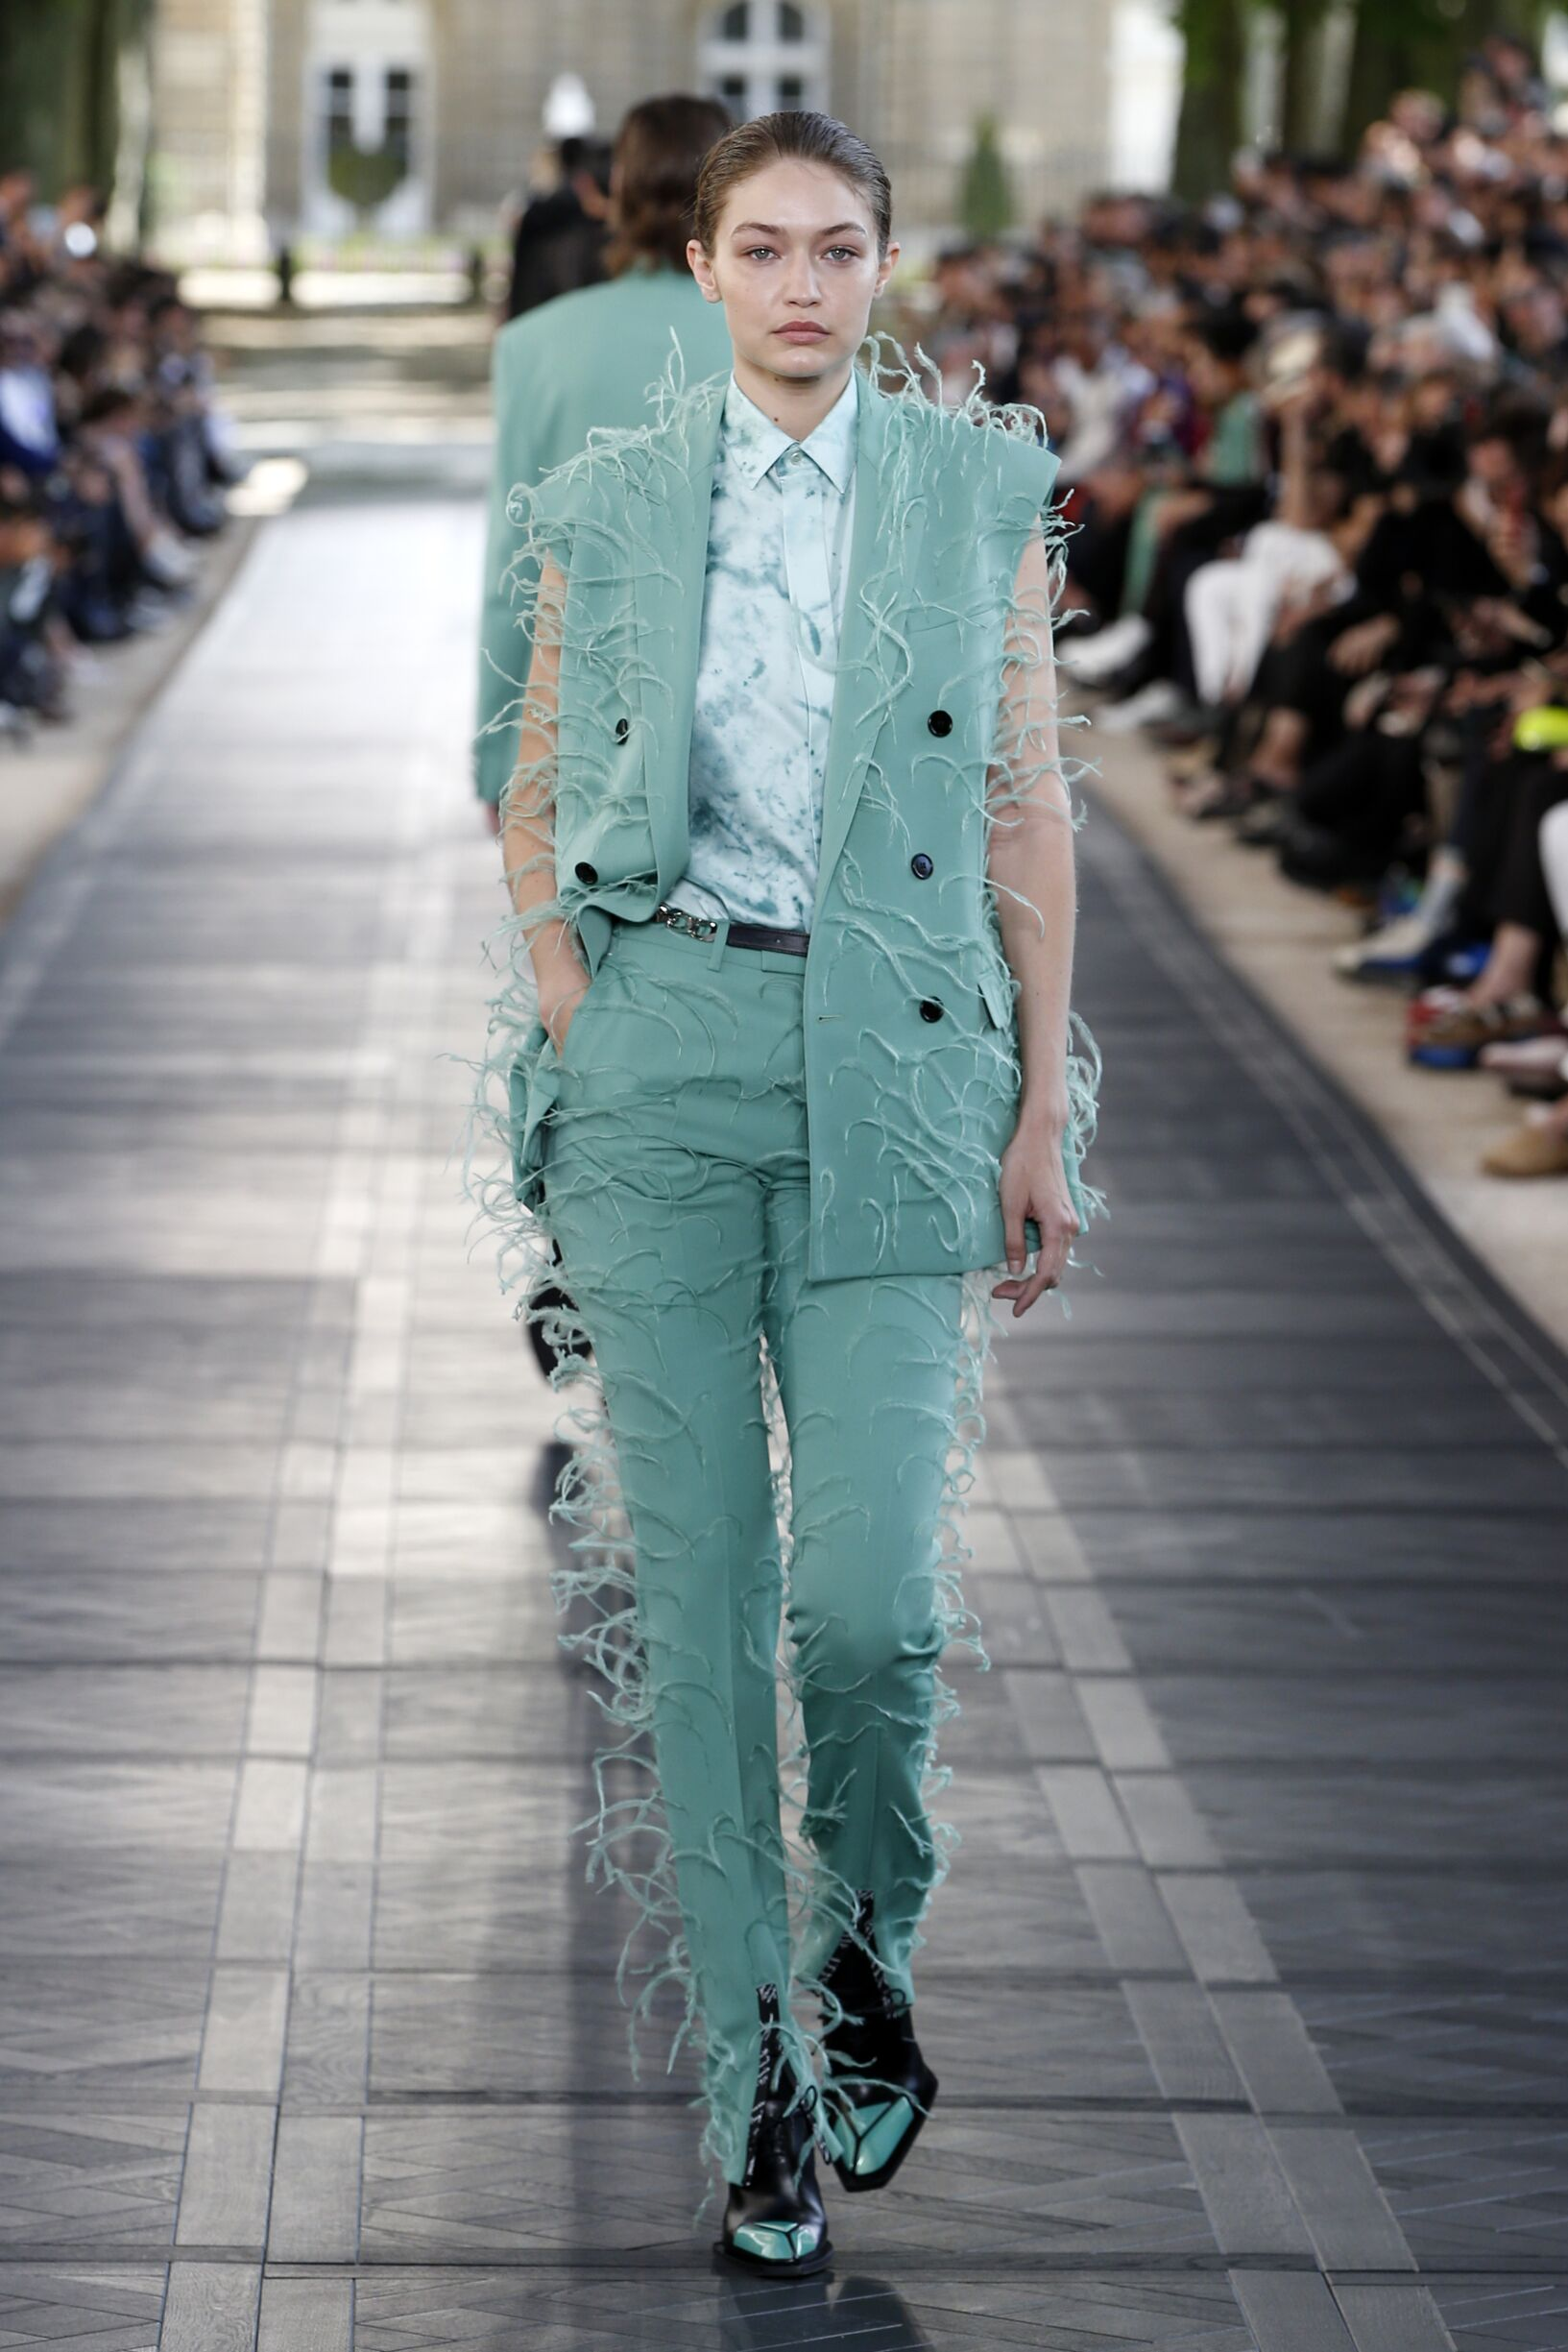 Woman SS 2020 Berluti Show Paris Fashion Week